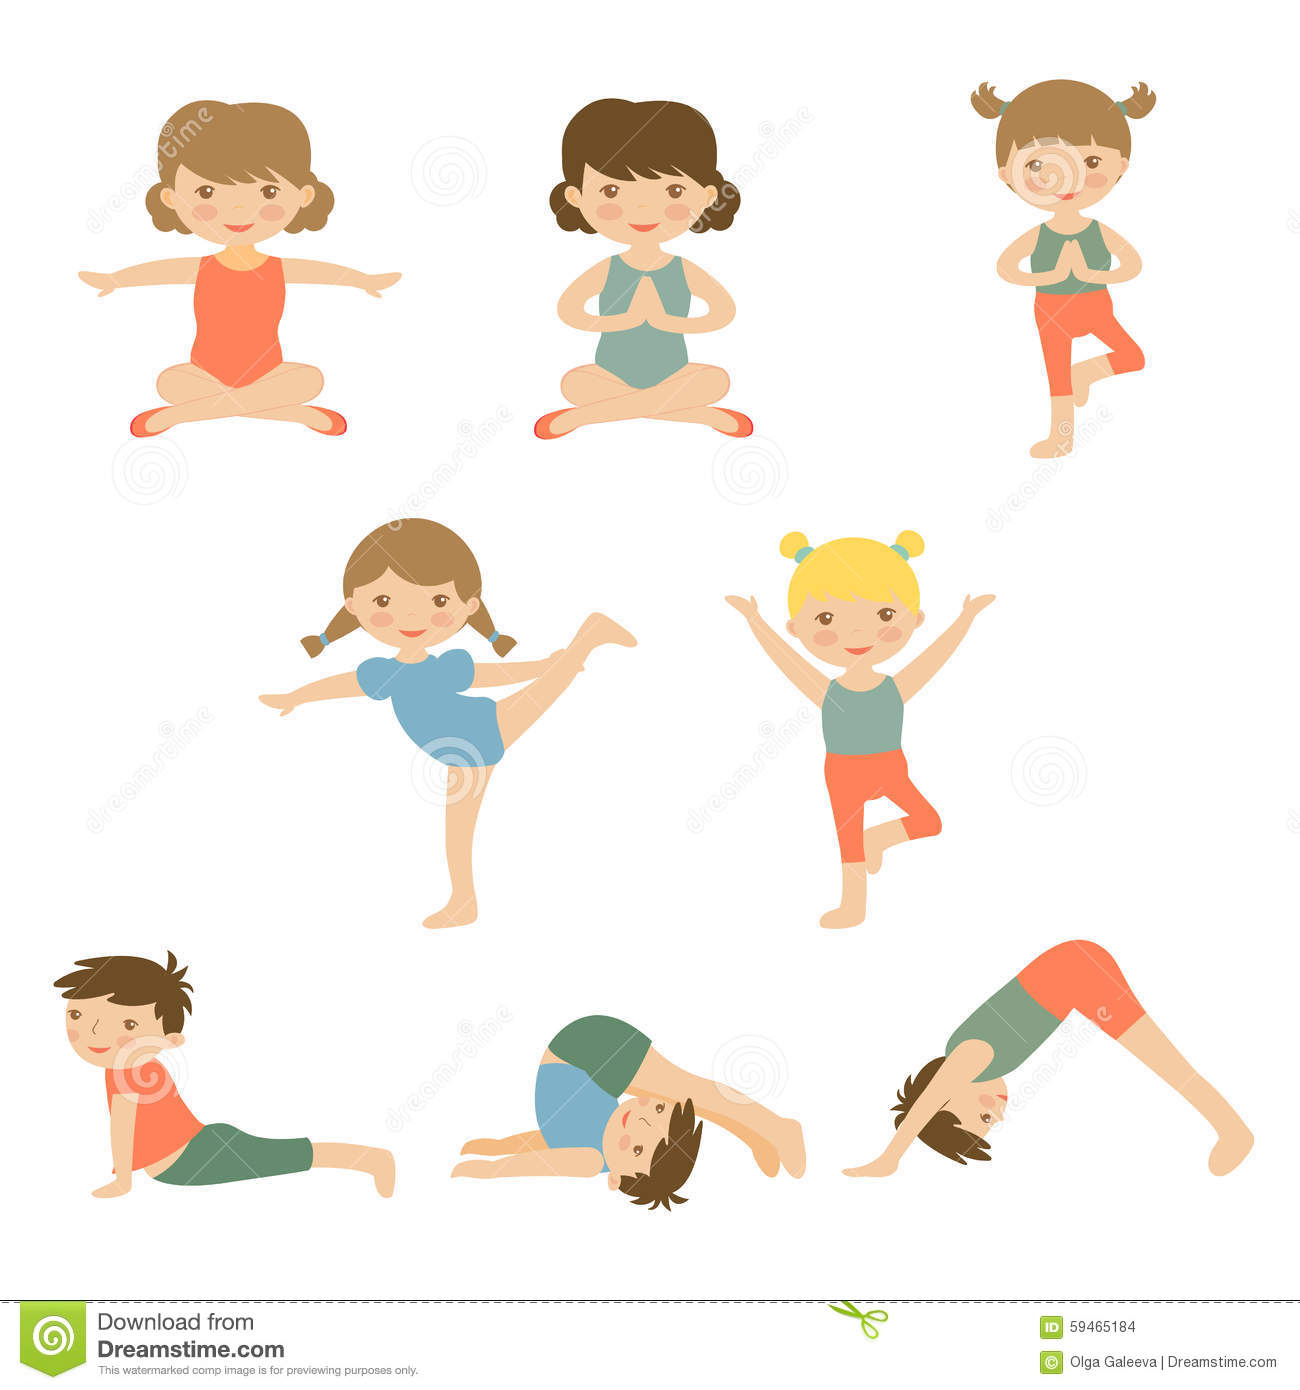 Kids yoga clipart 1 » Clipart Station.